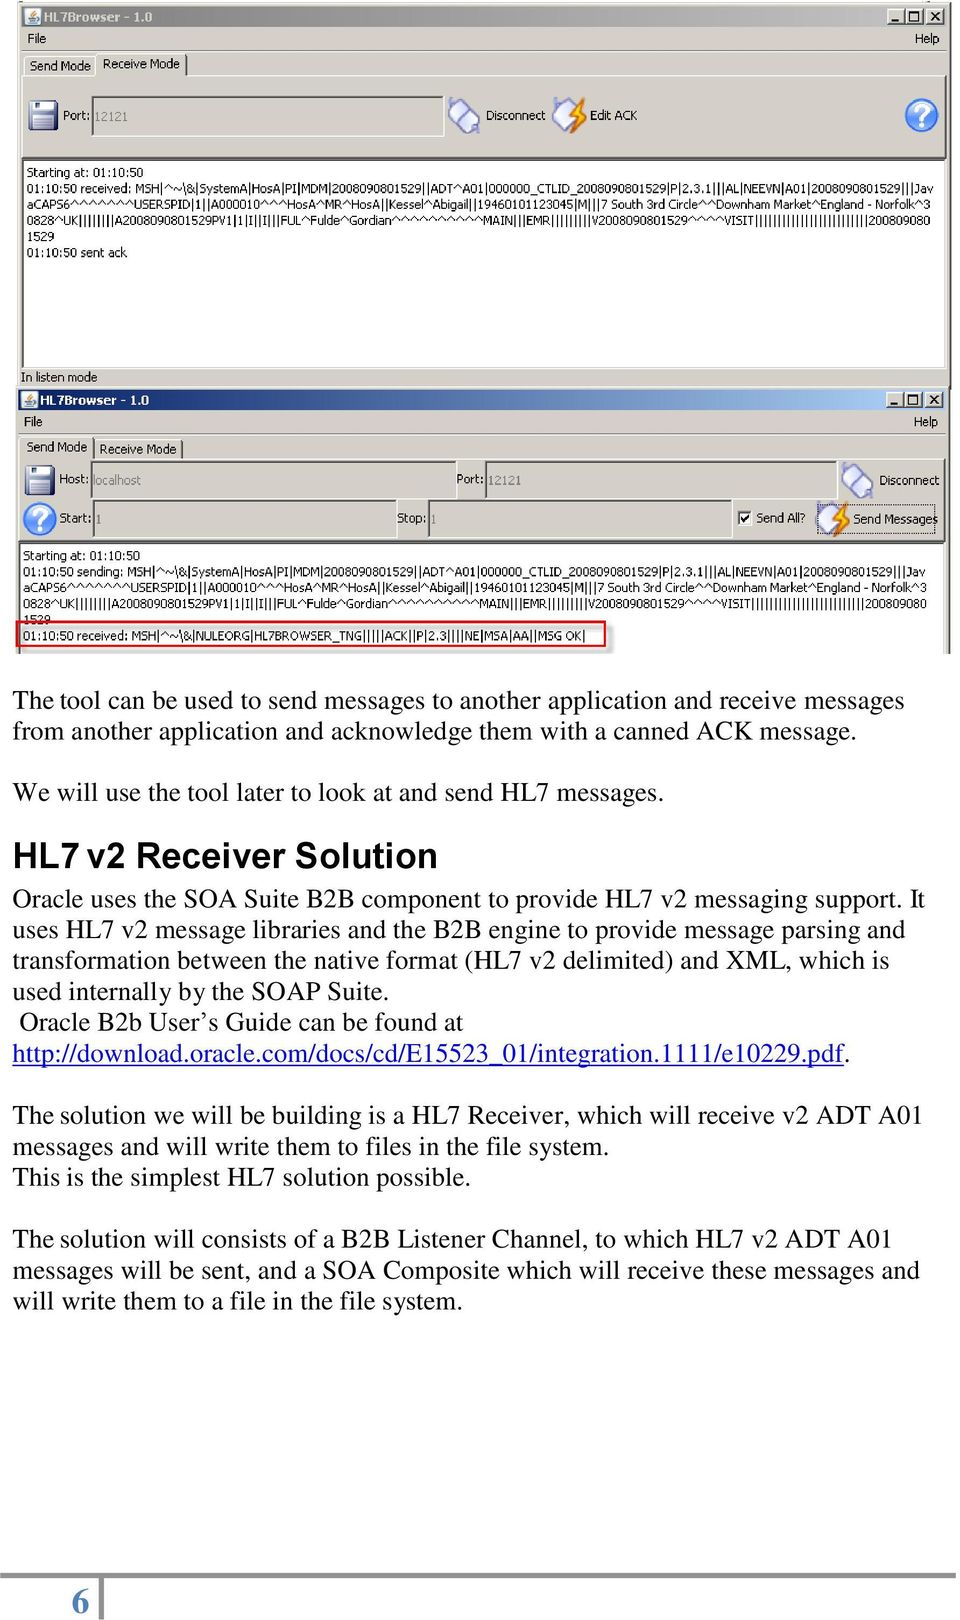 It uses HL7 v2 message libraries and the B2B engine to provide message  parsing and transformation